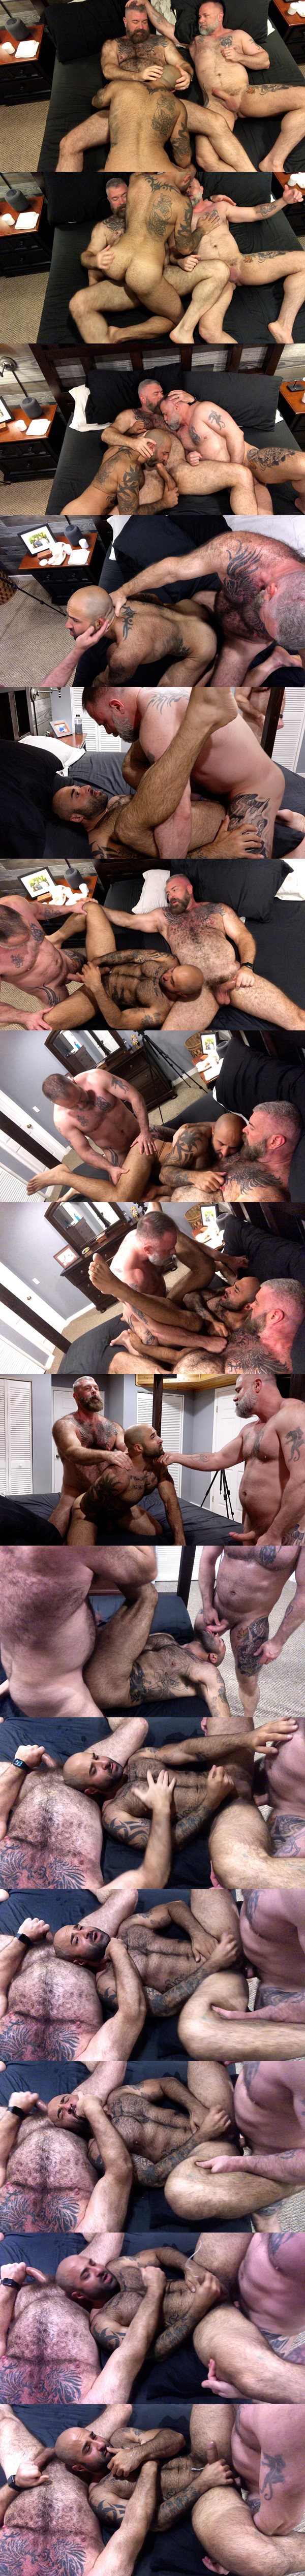 Muscle bear daddies Liam Angell and Will Angell bareback and creampie sexy fuzzy beefcake Atlas Grant in a raw threeway at Musclebearporn 02